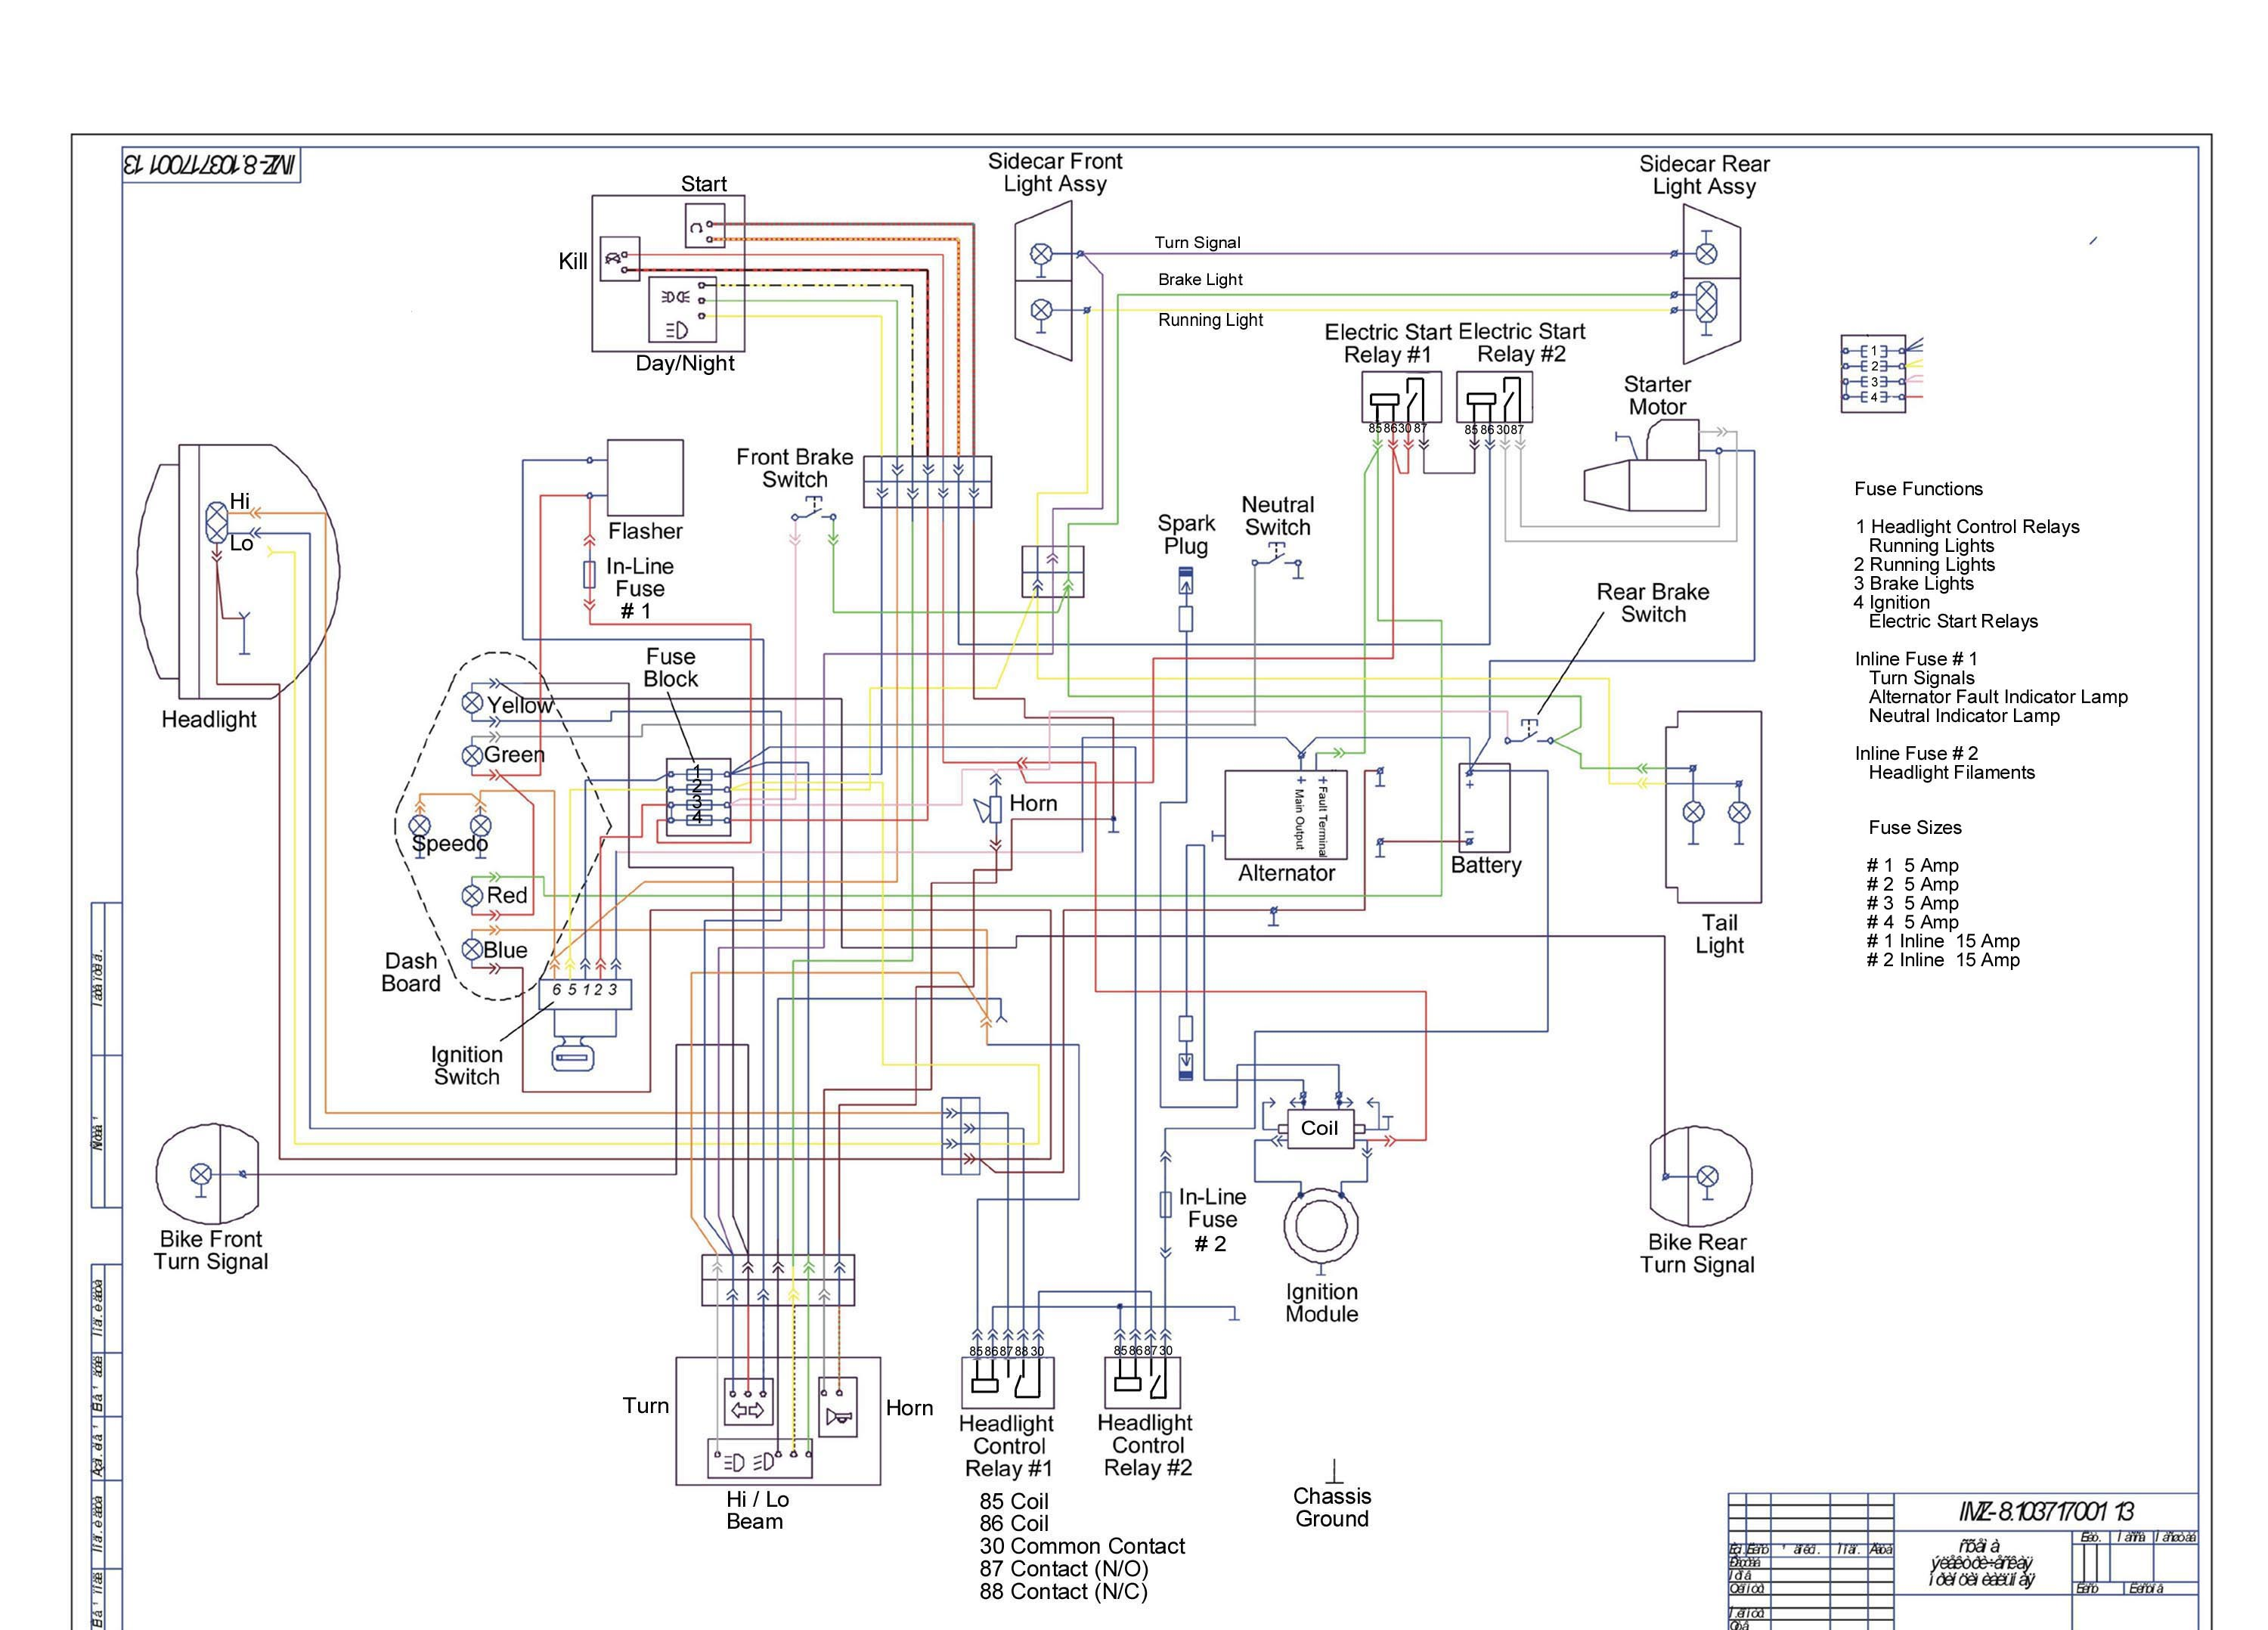 750 Wiring Schematic?resize\\\\\\\\\\\\\\\=665%2C478 celestion wiring diagrams wiring diagram shrutiradio celestion wiring diagrams at crackthecode.co